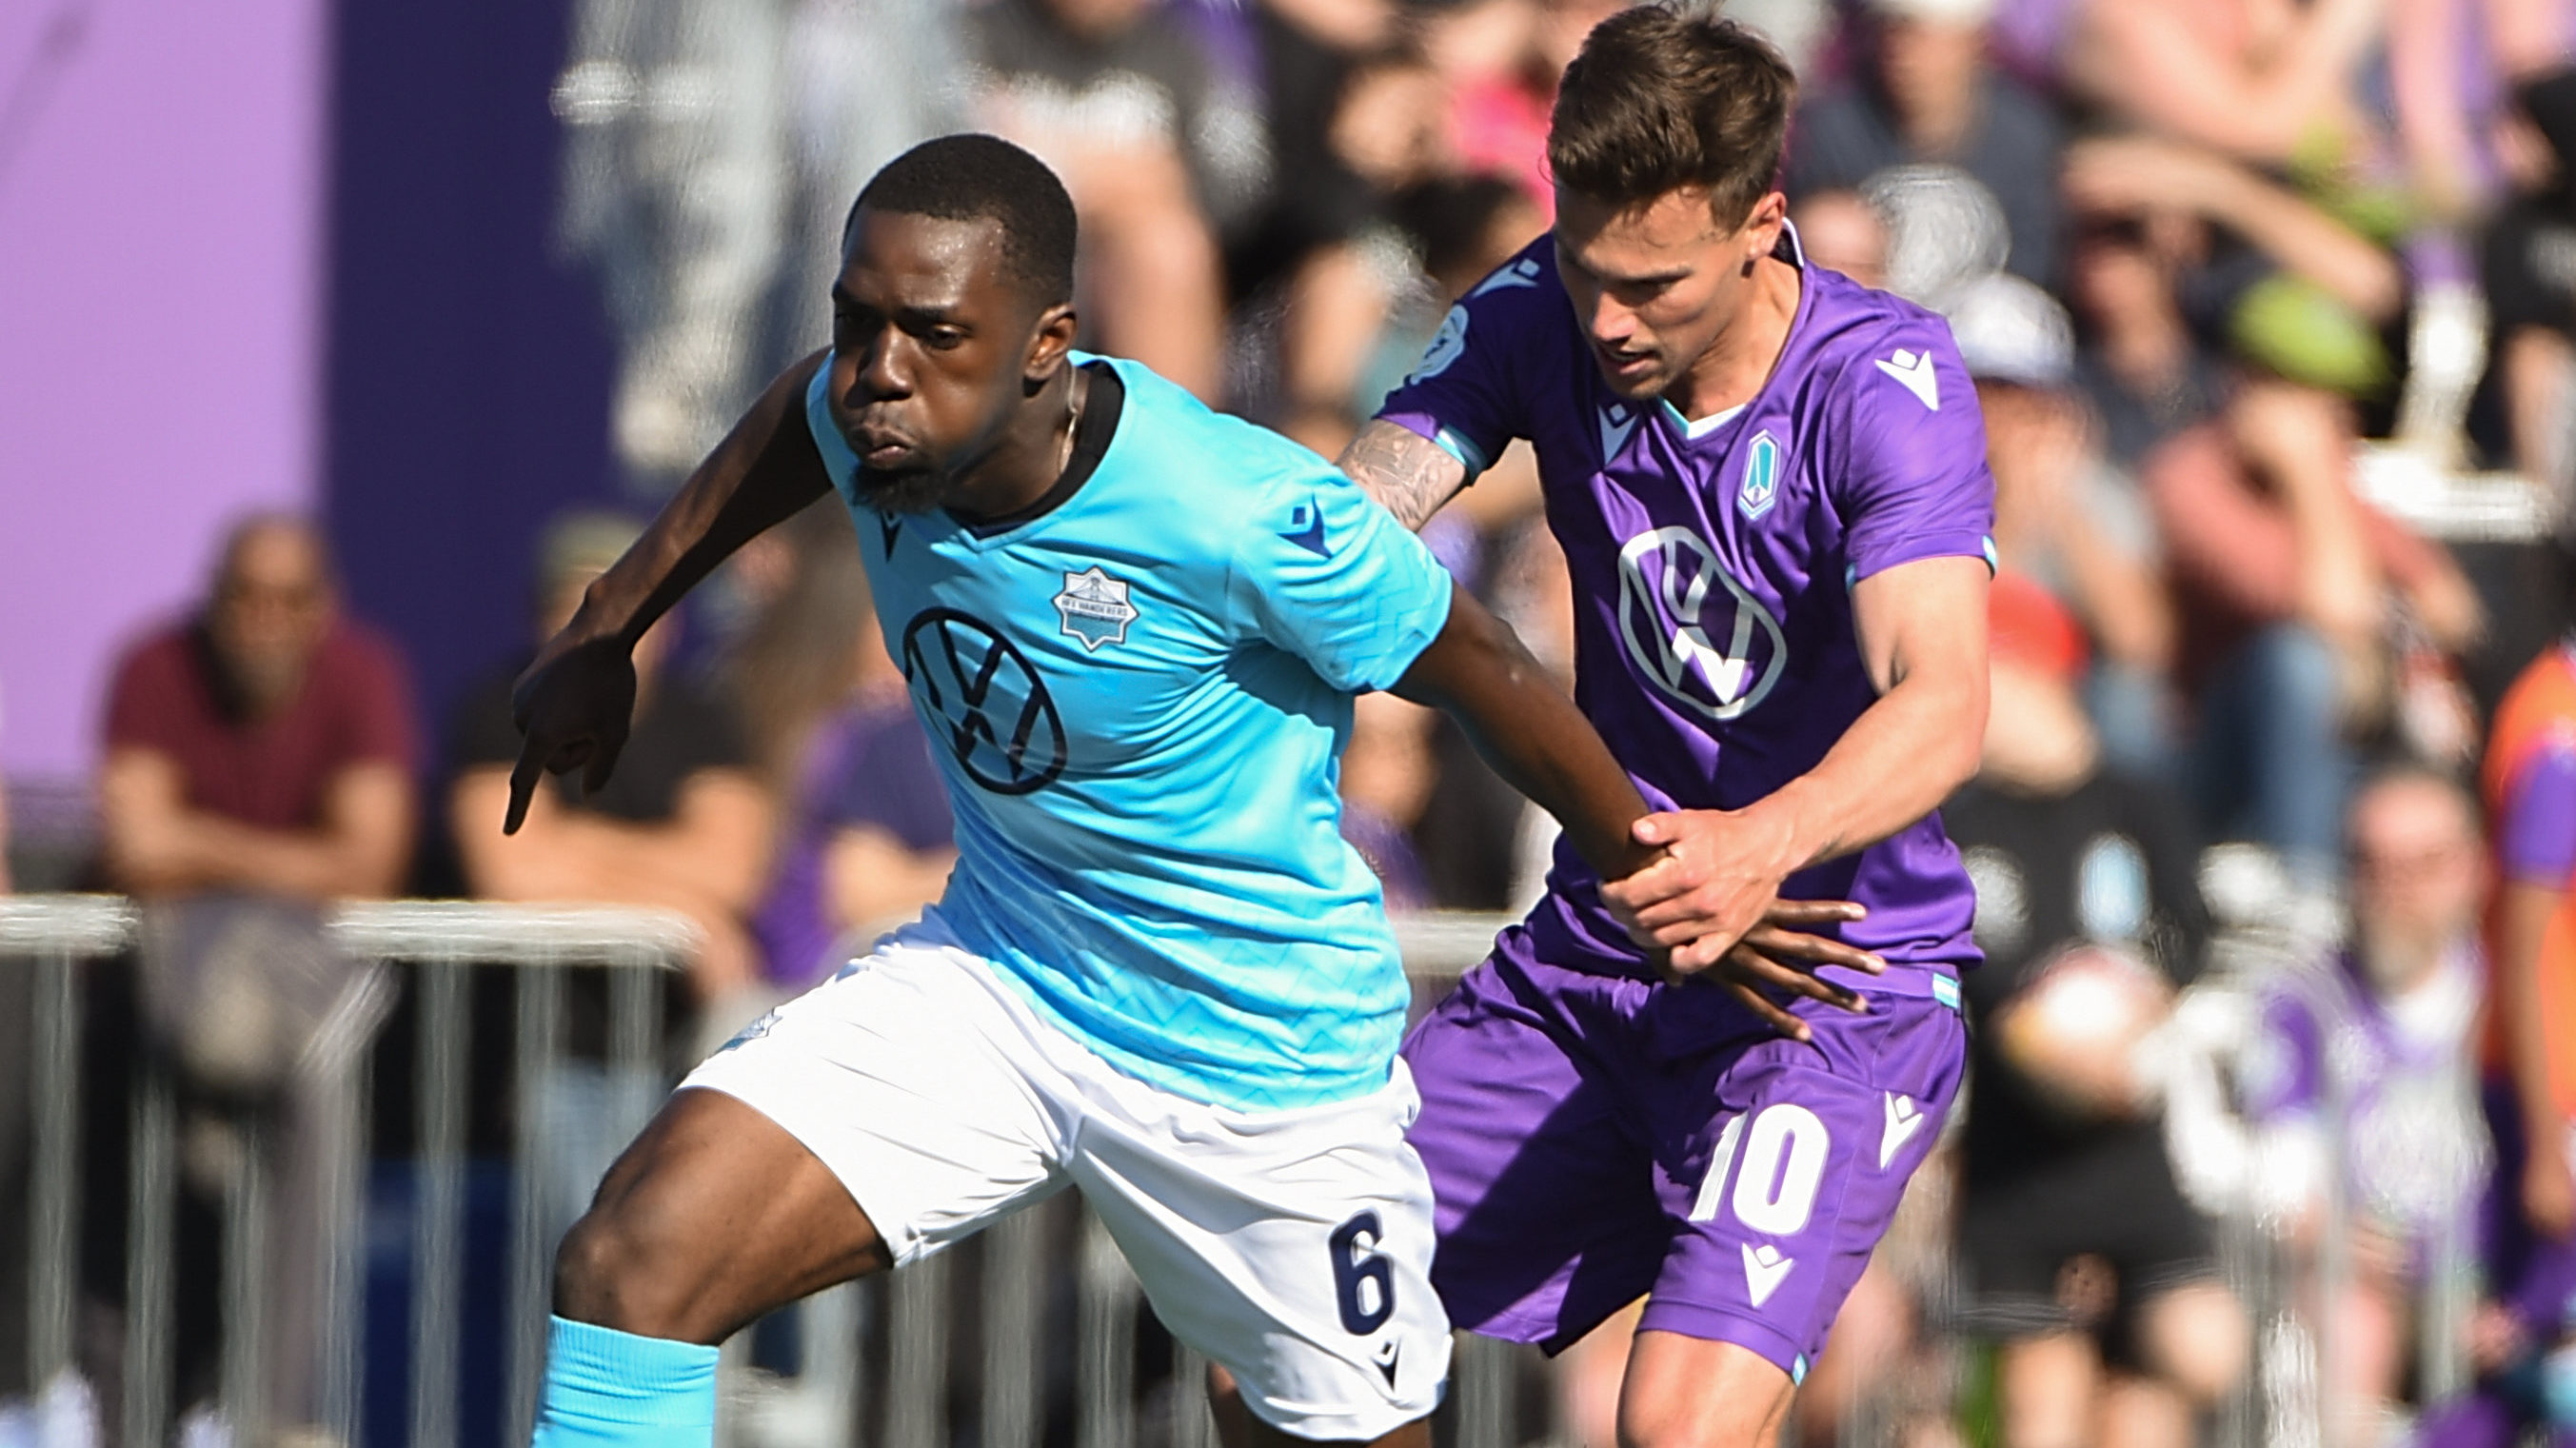 HFX Wanderers midfielder Chrisnovic N'sa controls the ball against Pacific FC midfielder Ben Fisk. (Anne-Marie Sorvin-USA TODAY Sports for CPL).